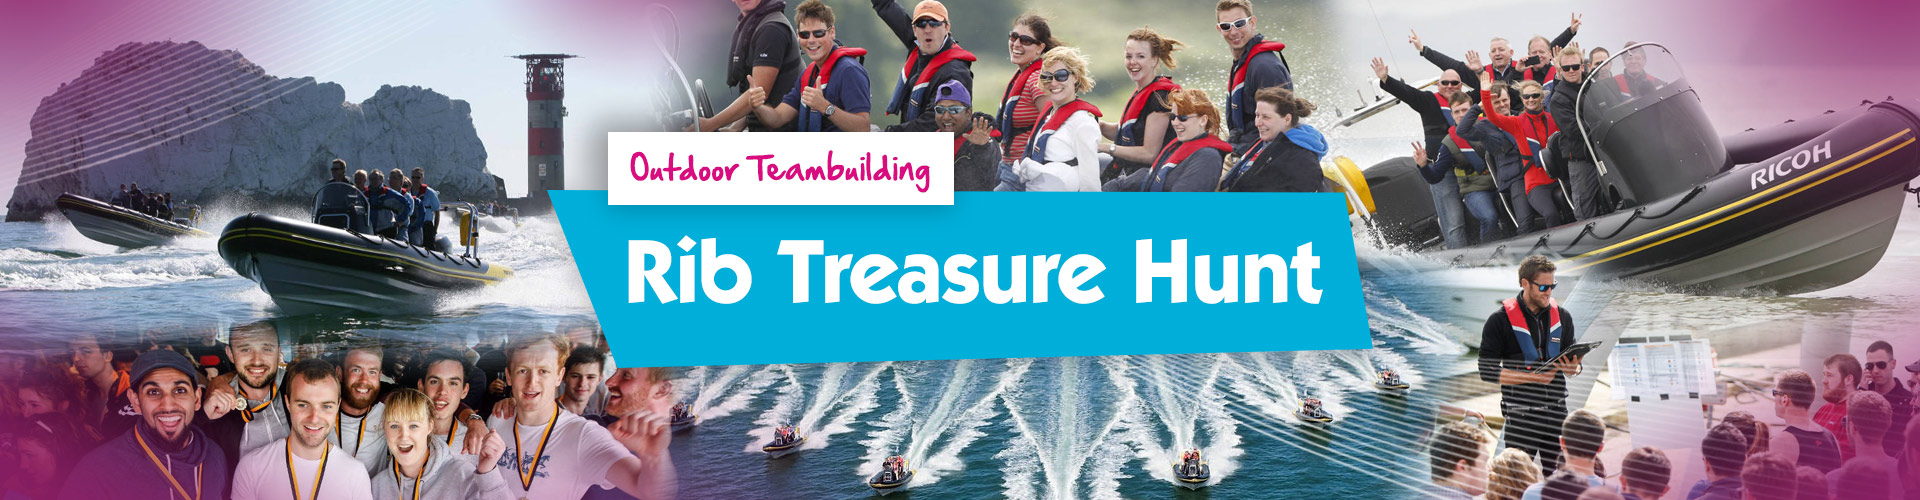 TB OutdoorEvents 1920x500 Banner RibTreasureHunt